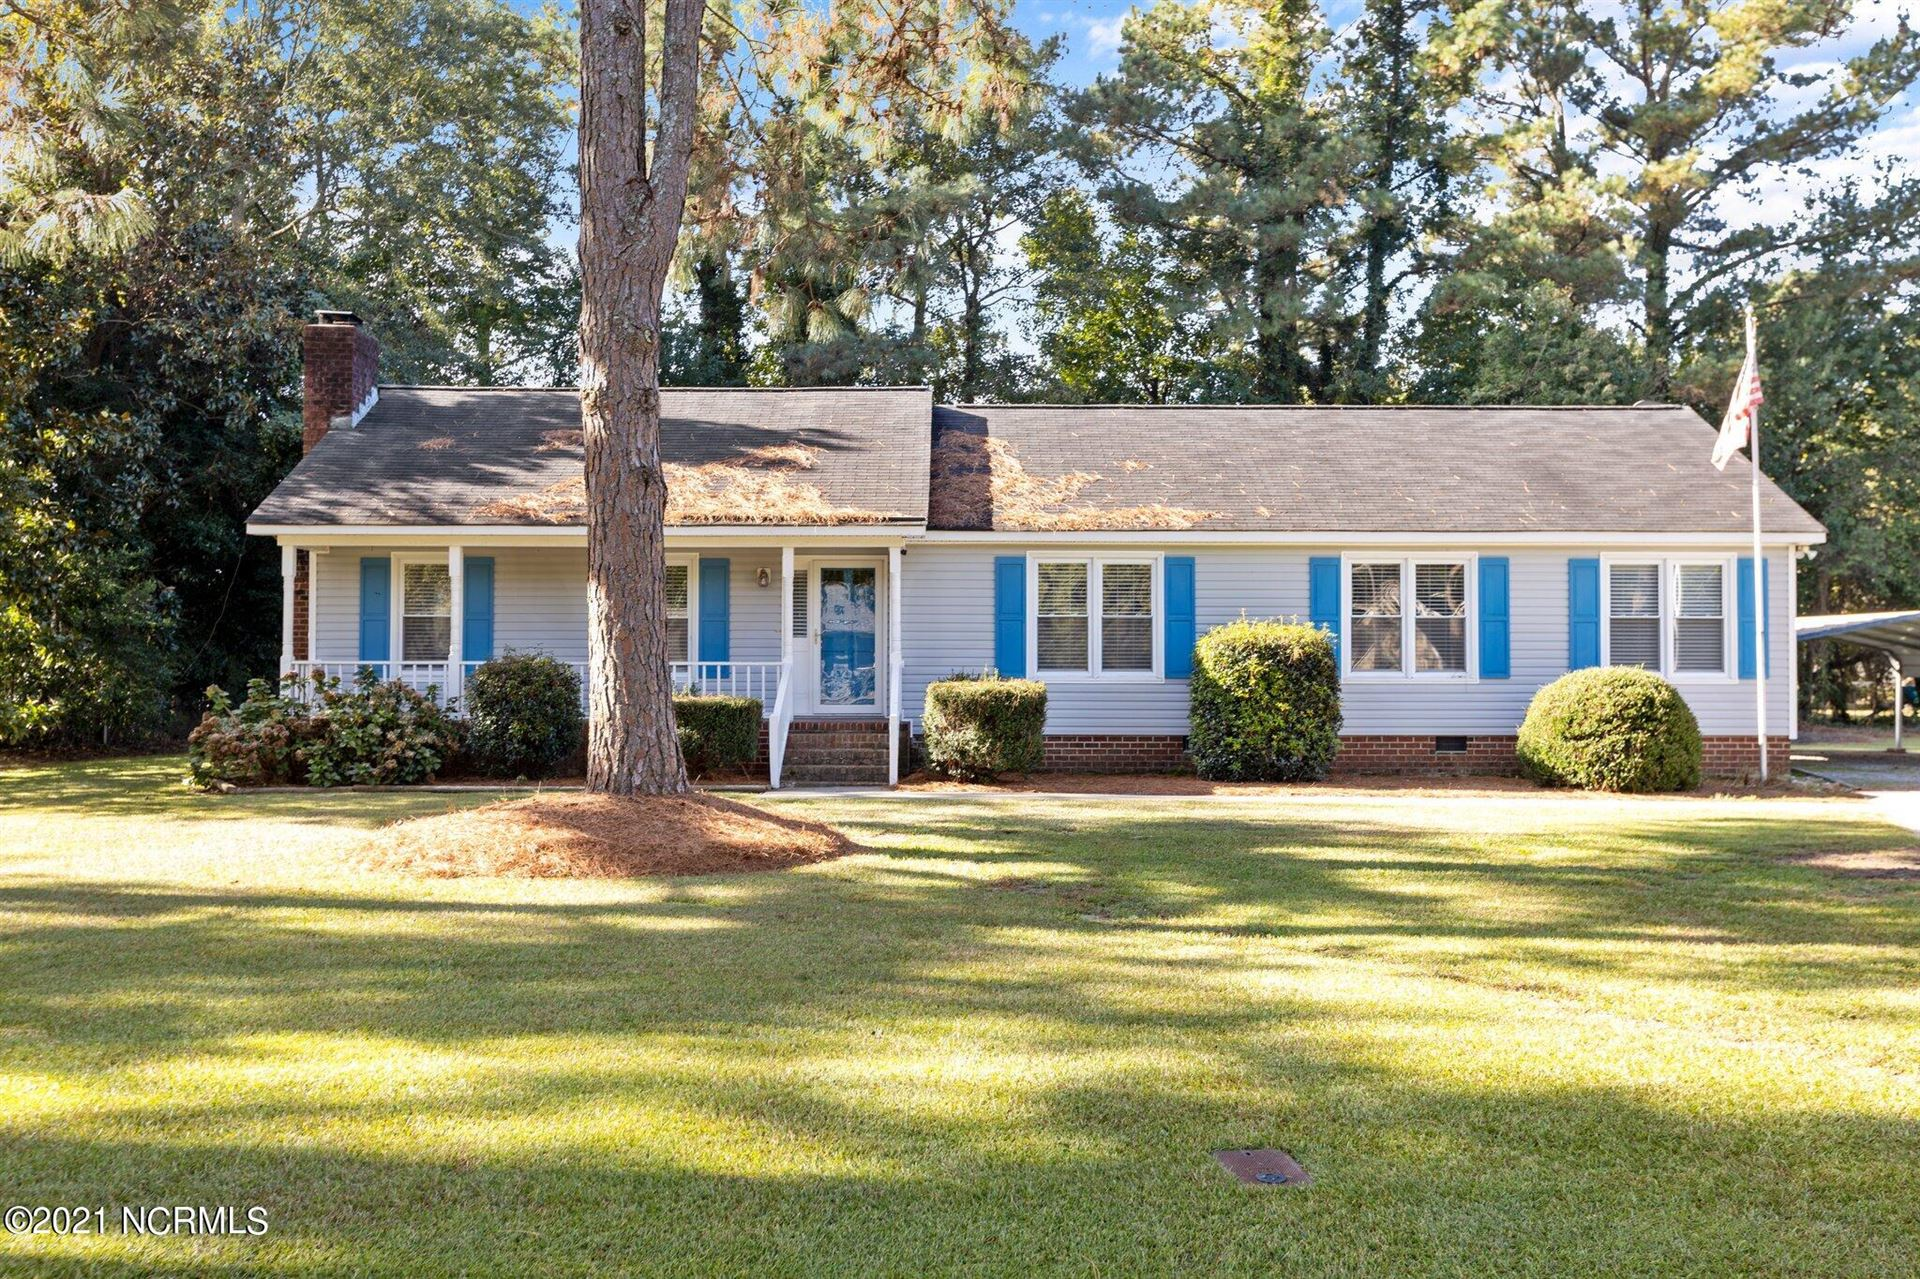 203 Evanswood Drive, Greenville, NC 27858 - #: 100296185